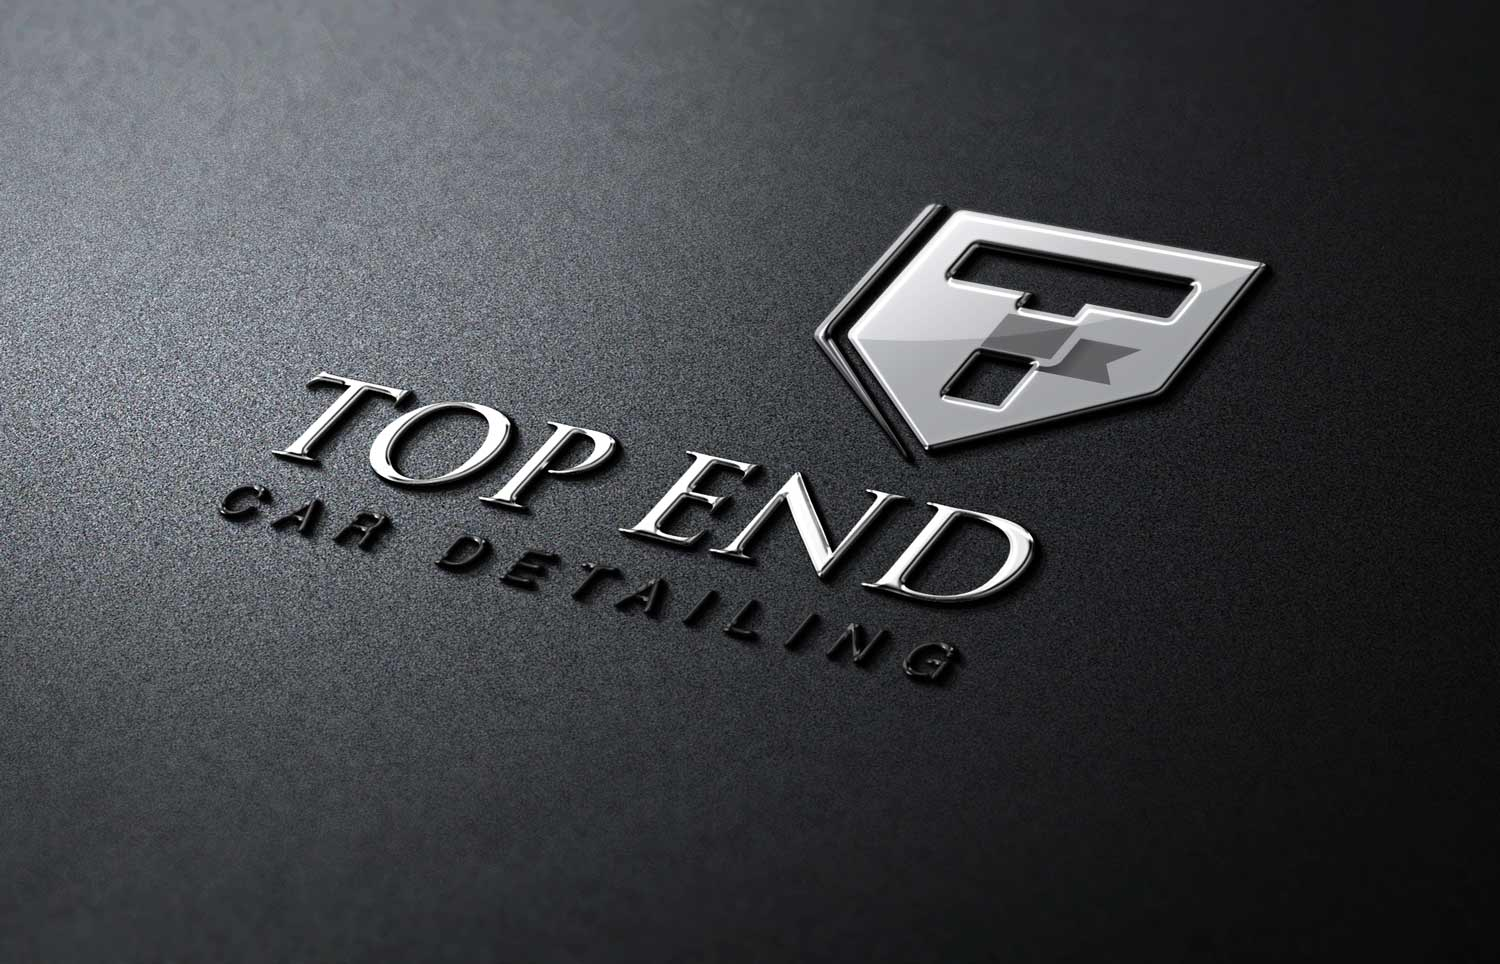 Totem-Creative-Design-&-Branding_Top-End-car-detailing-Logo.jpg